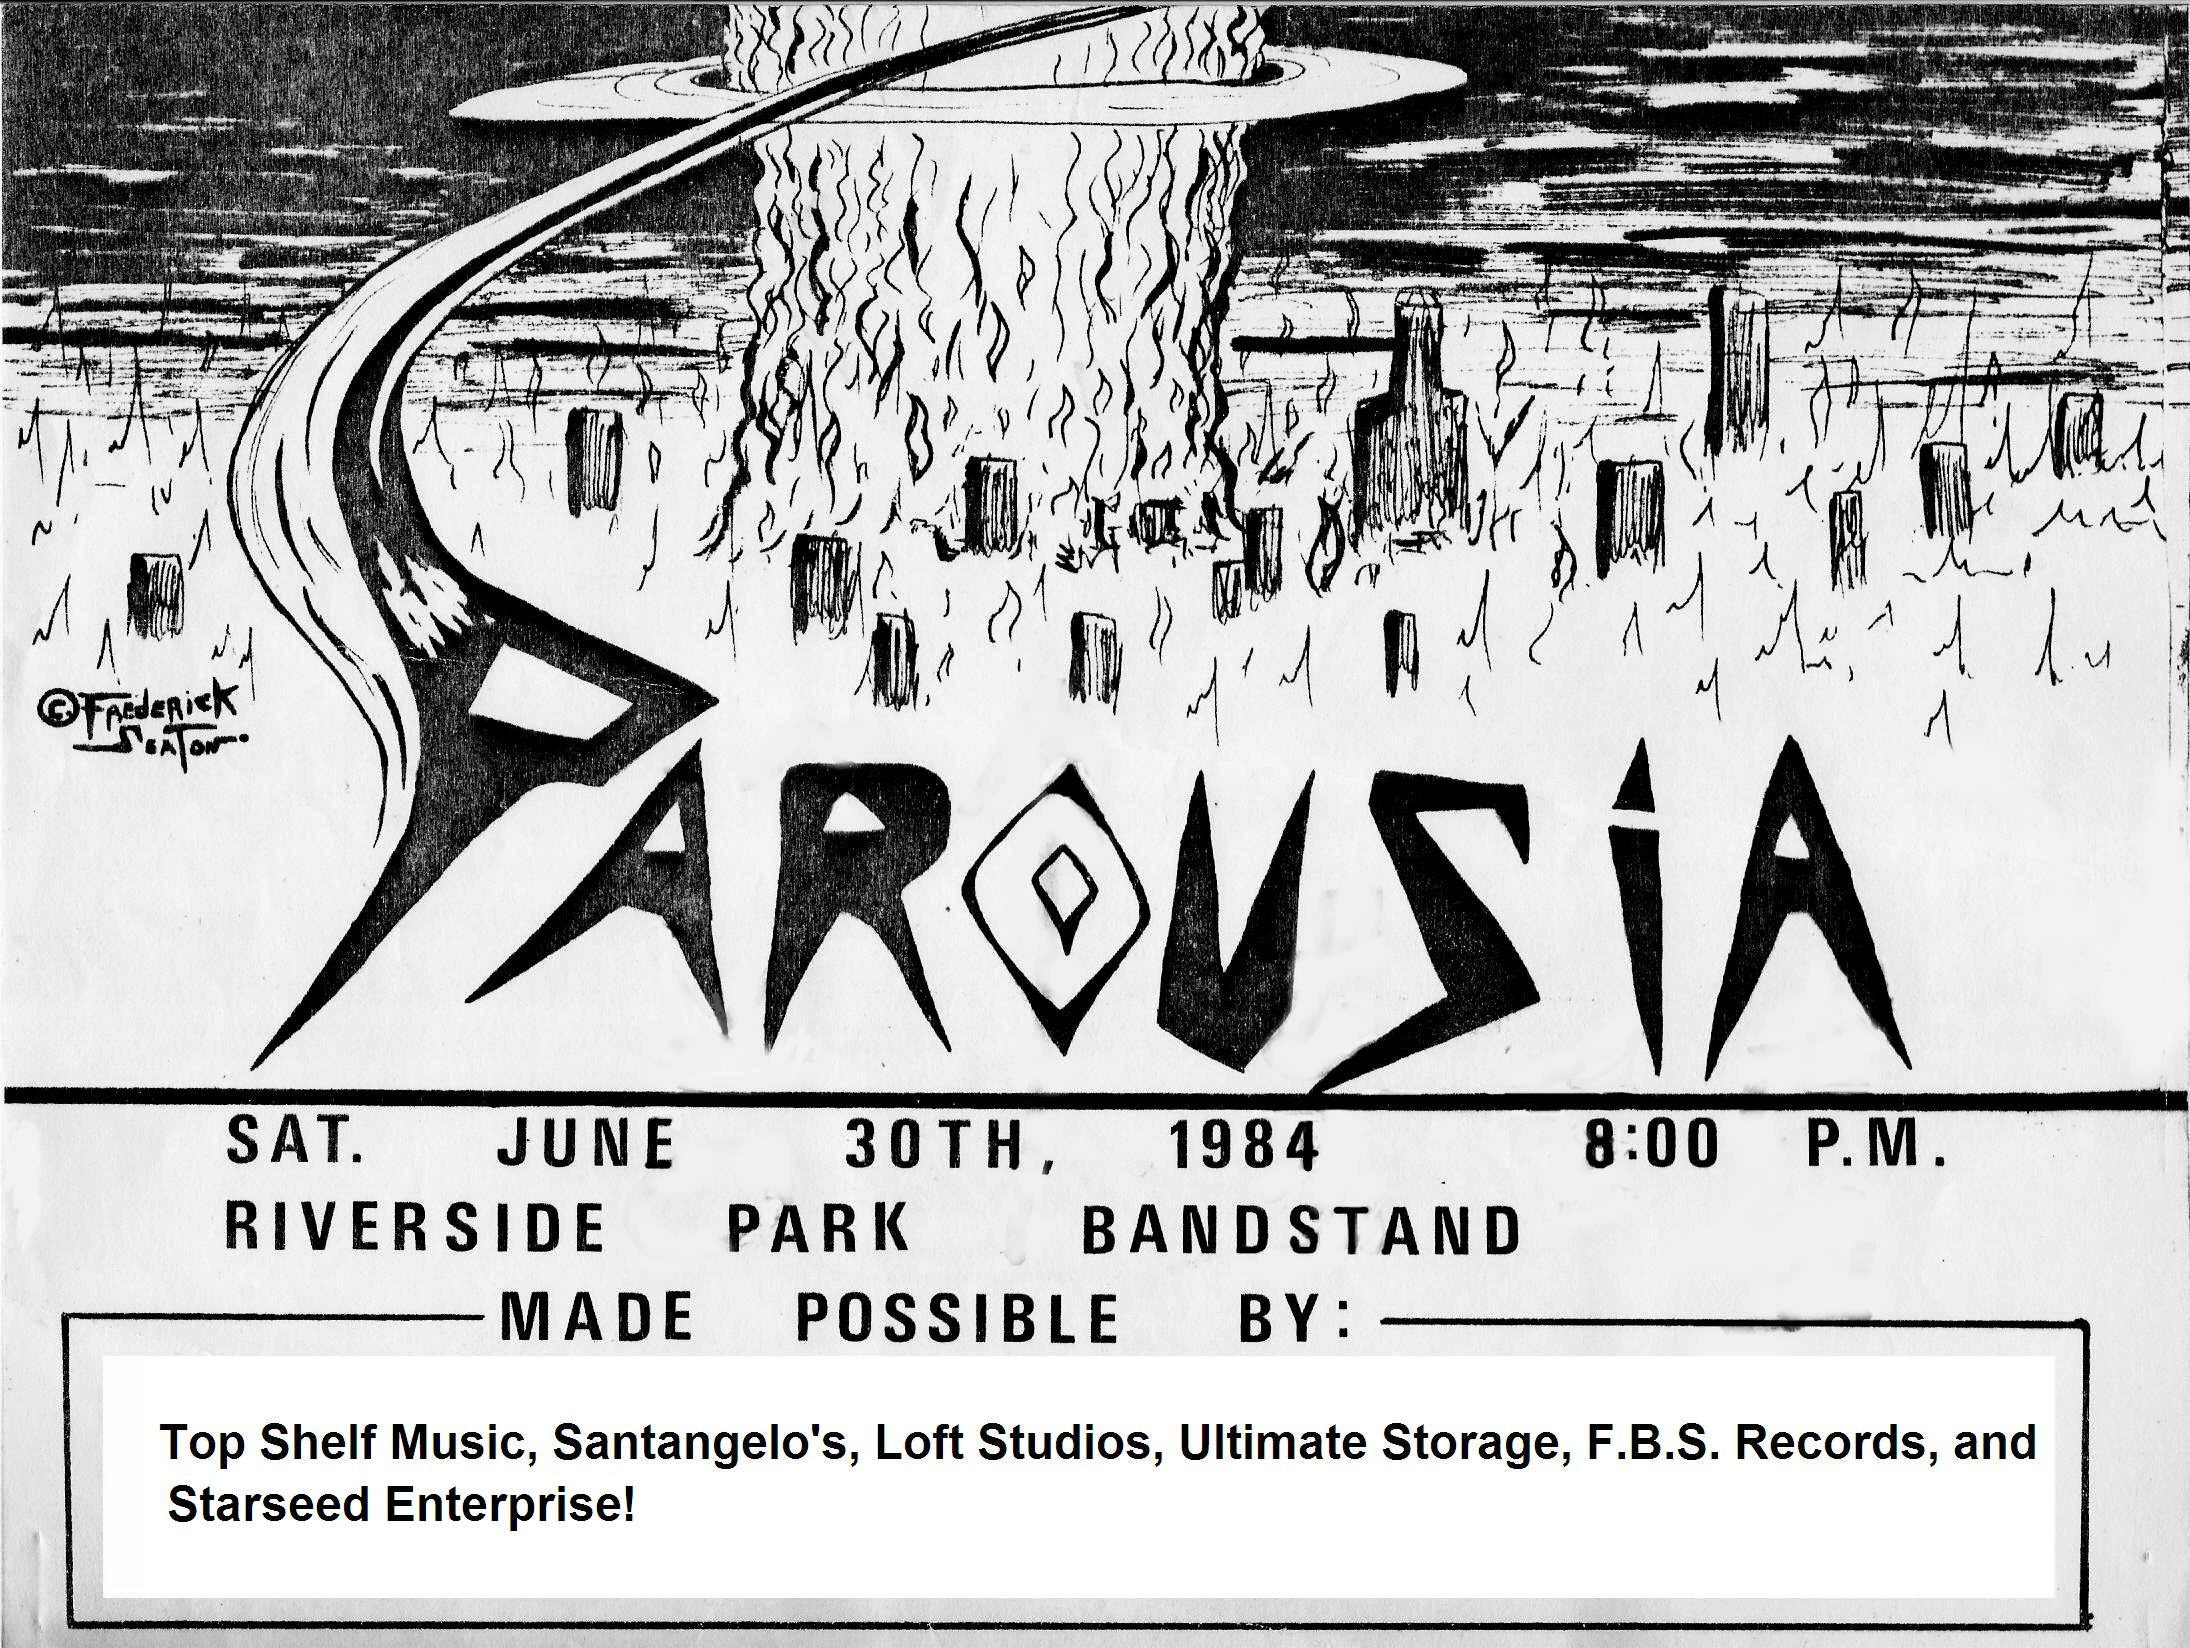 Riverside Park June 30th  Poster by Frederick Seaton  (BOTTOM)